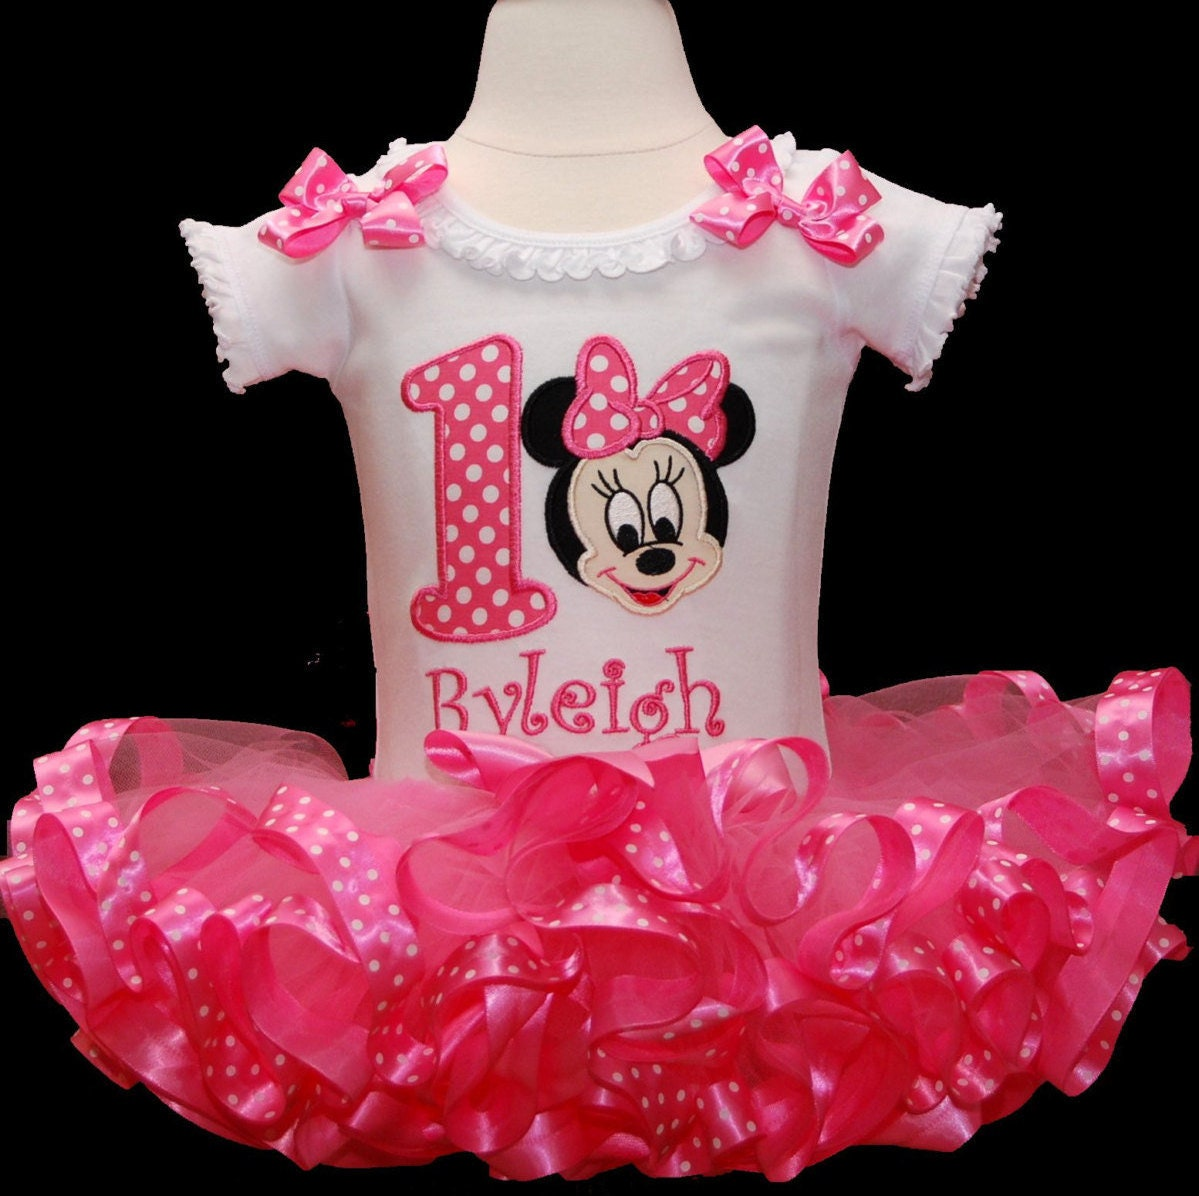 Minnie Mouse birthday outfit 1st birthday girl outfit Minnie Mouse 1st birthday outfit minnie mouse dress first birthday ribbon trimmed tutu